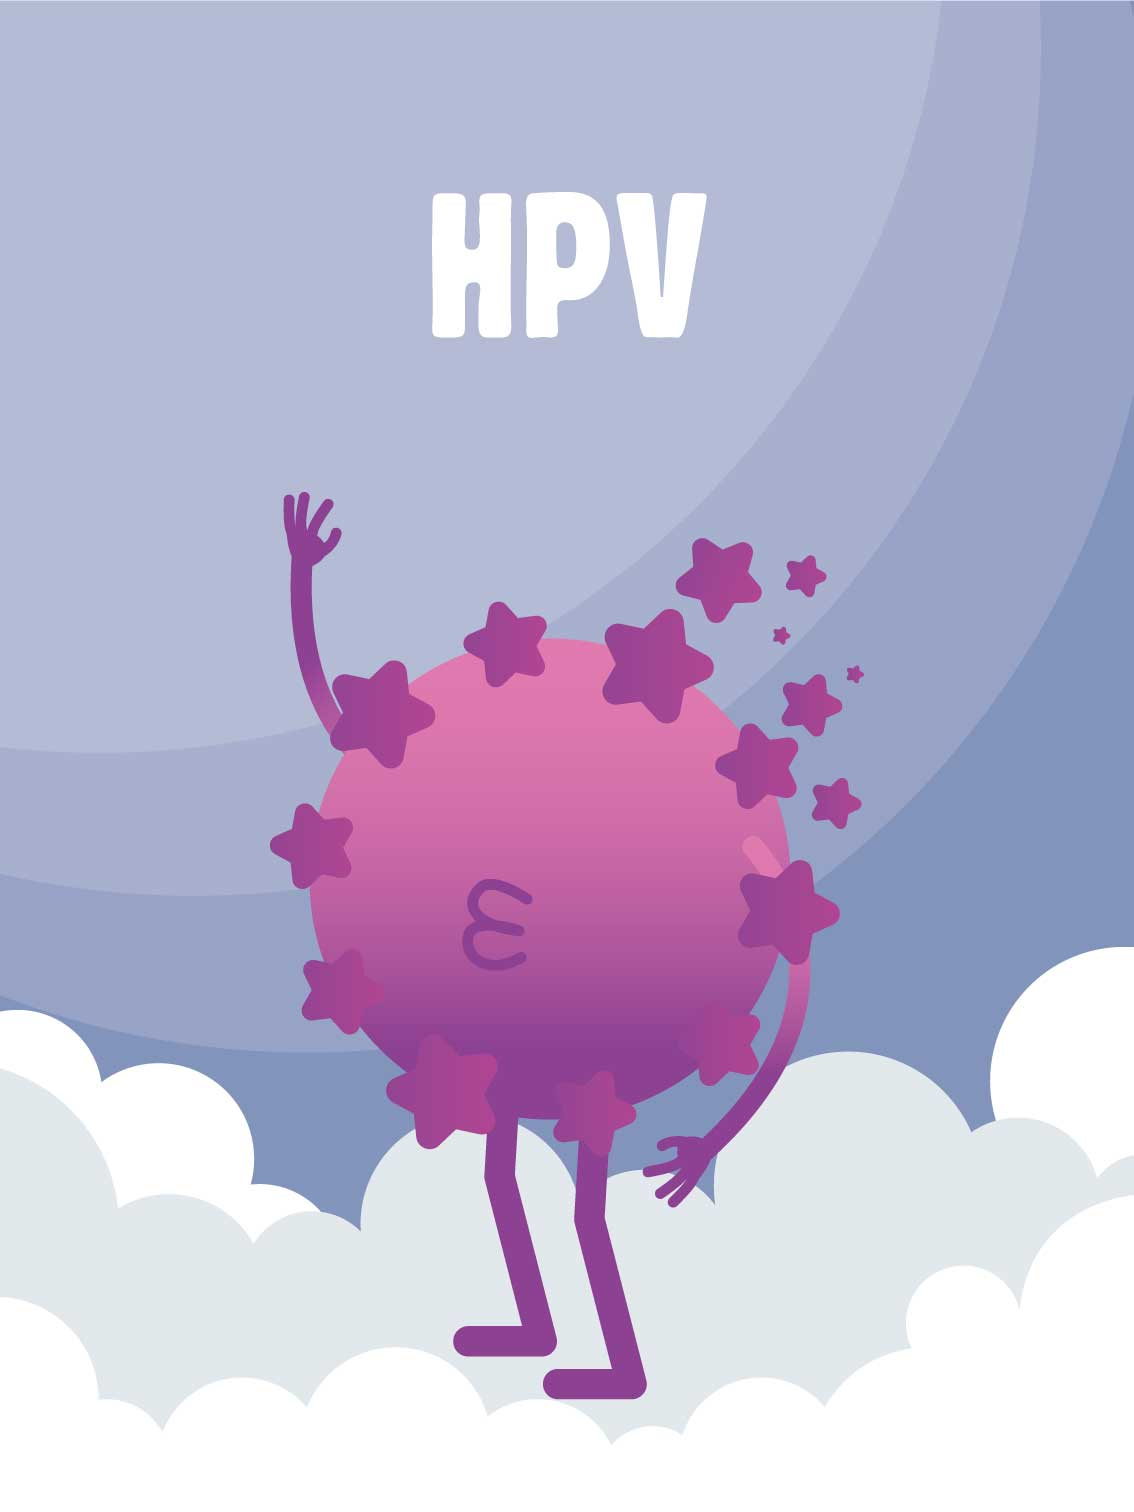 hpv femme cause hpv virus if i have